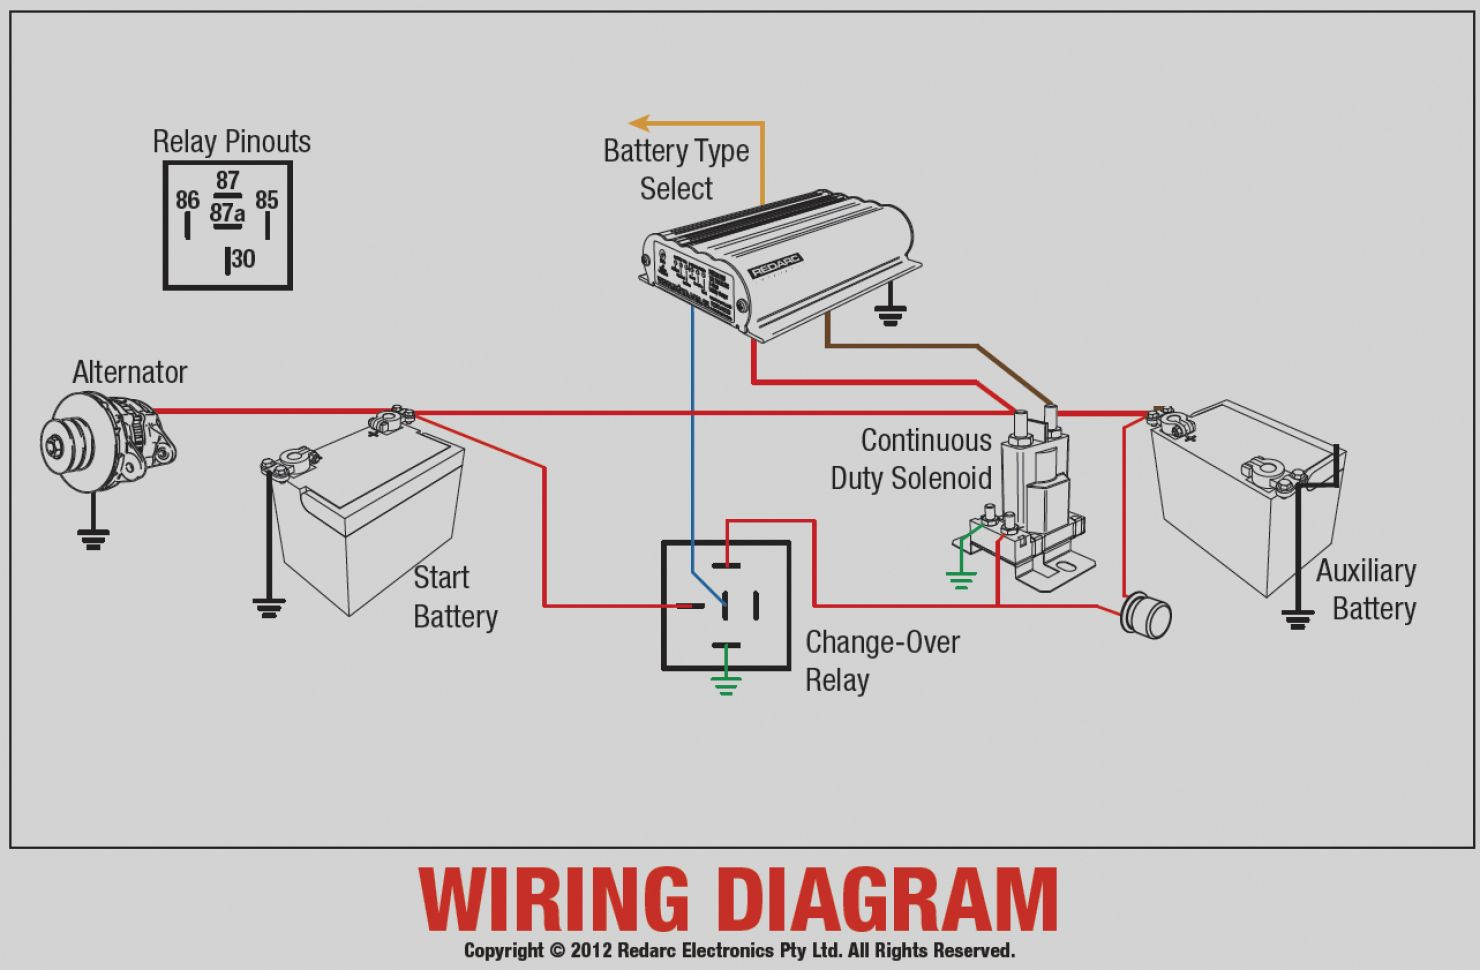 Latest Red Arc Dual Battery System Wiring Diagram REDARC BCDC1225LV DUAL  BATTERY ISOLATOR SYSTEM WIRING KIT